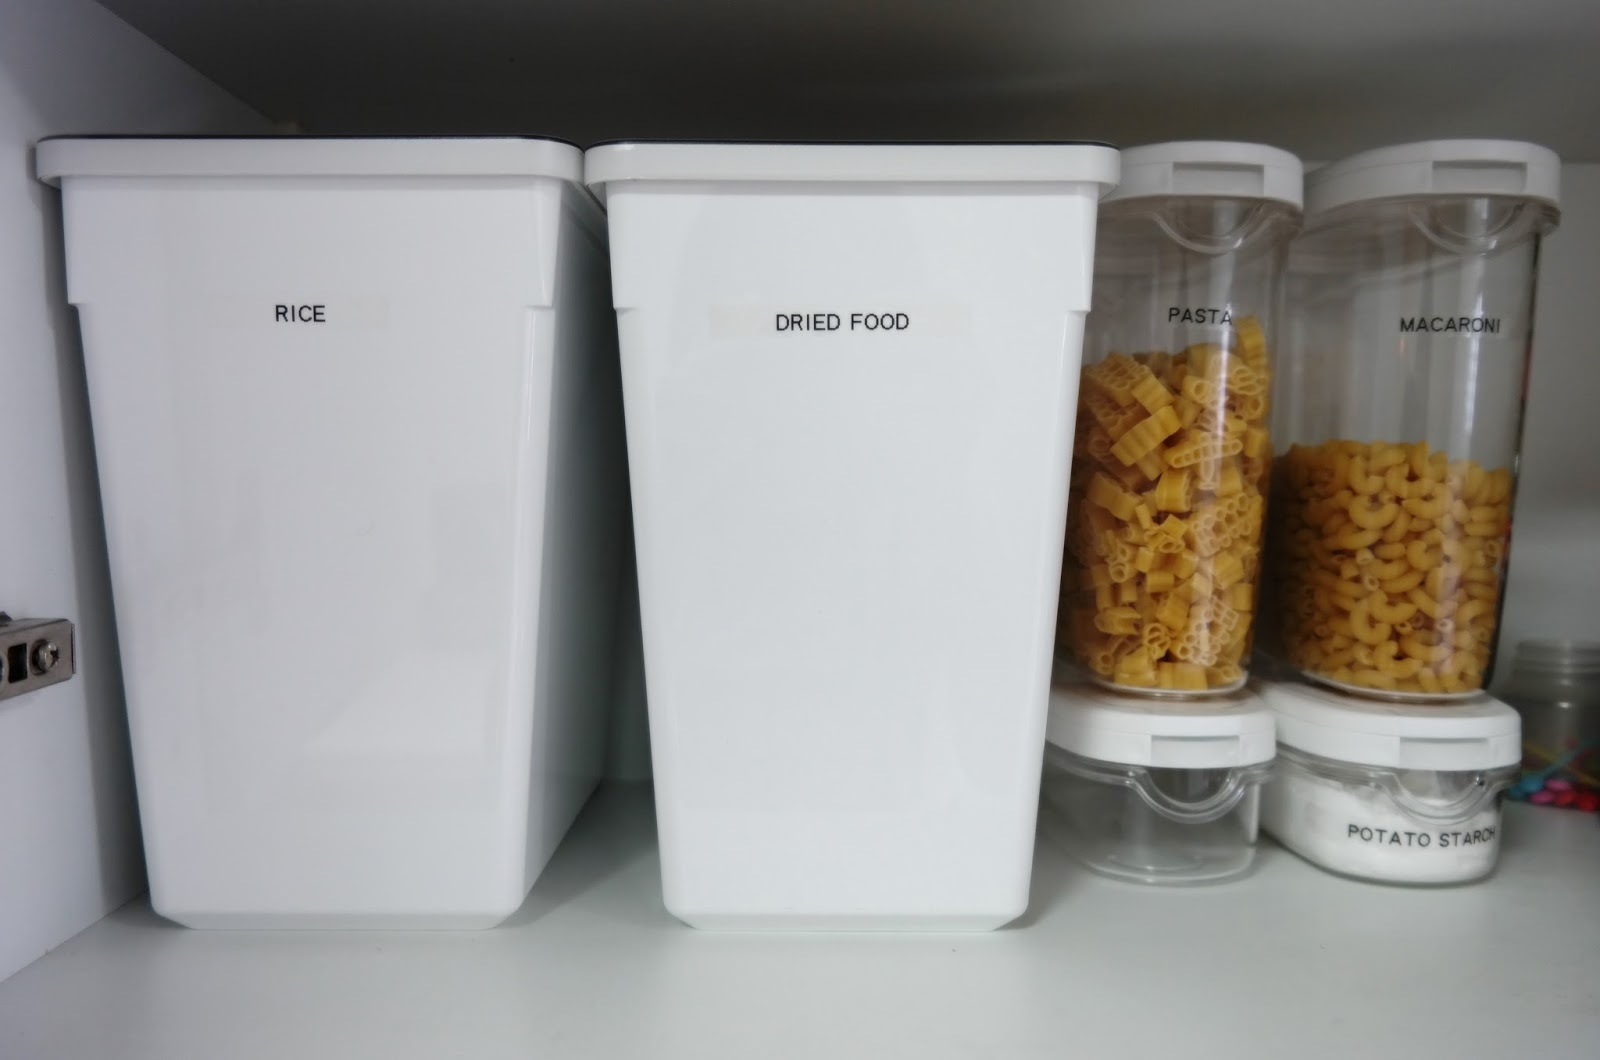 Ashlyn thia ikea 5 simple ways to reduce food wastage at home - Ikea container home ...